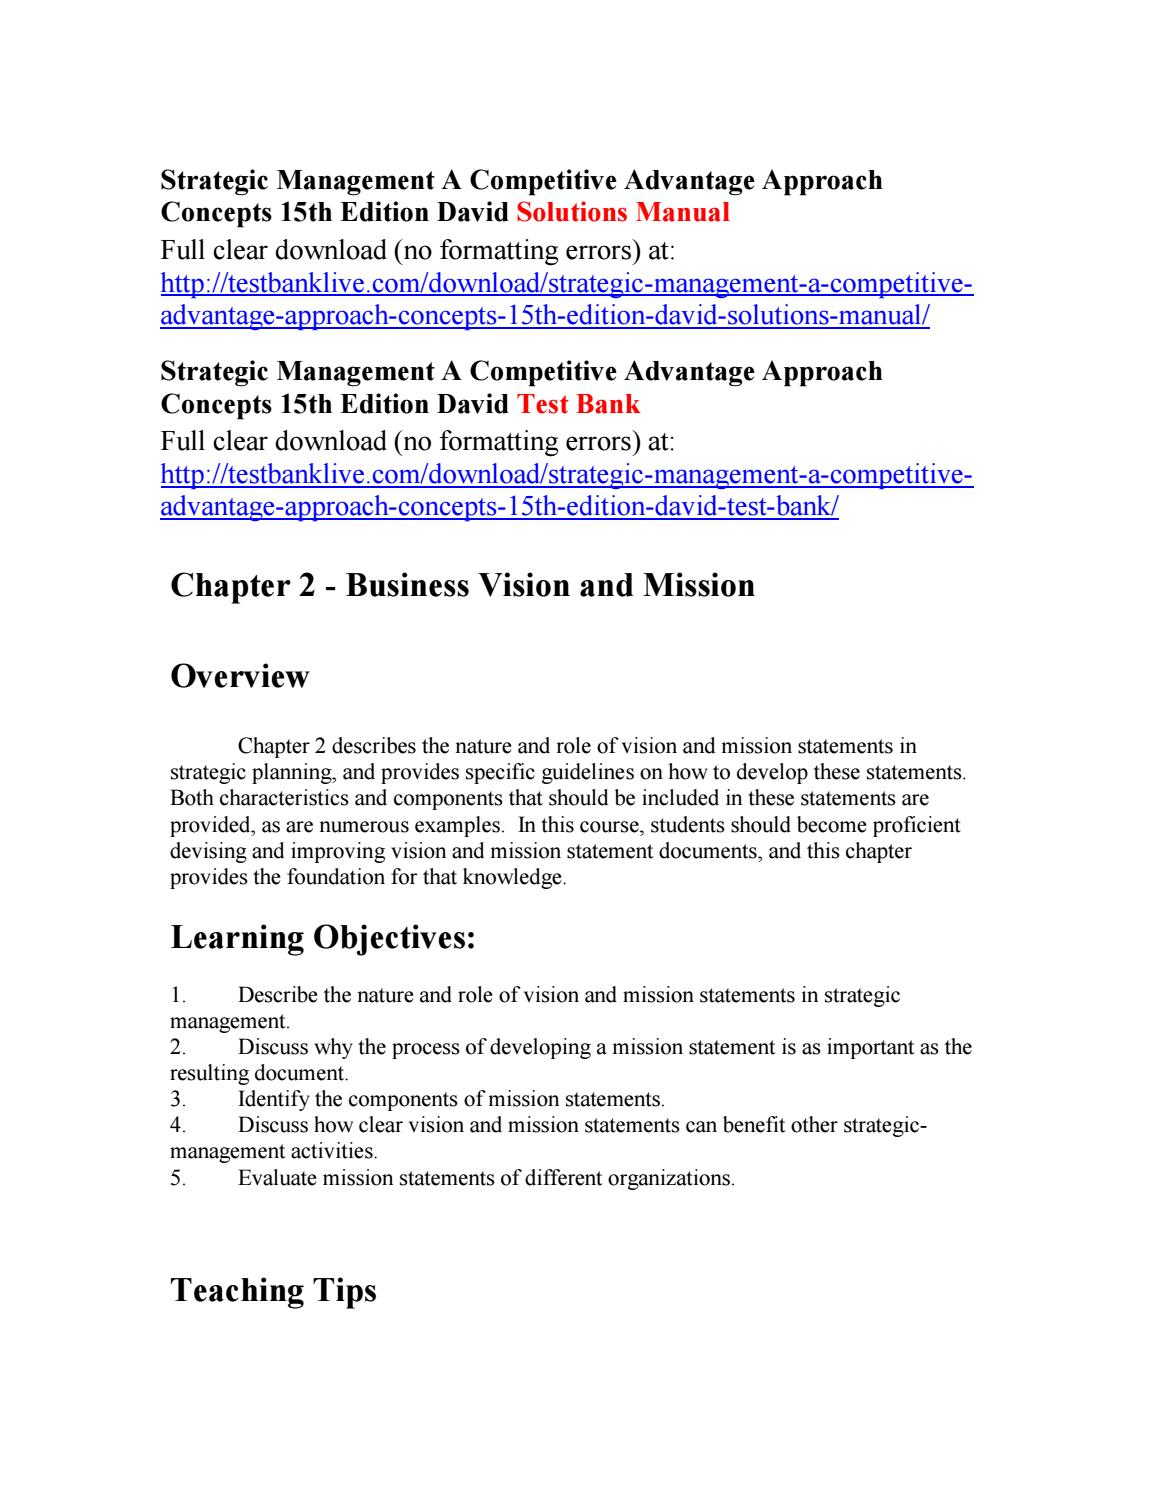 Strategic Management A Competitive Advantage Approach Concepts 15th